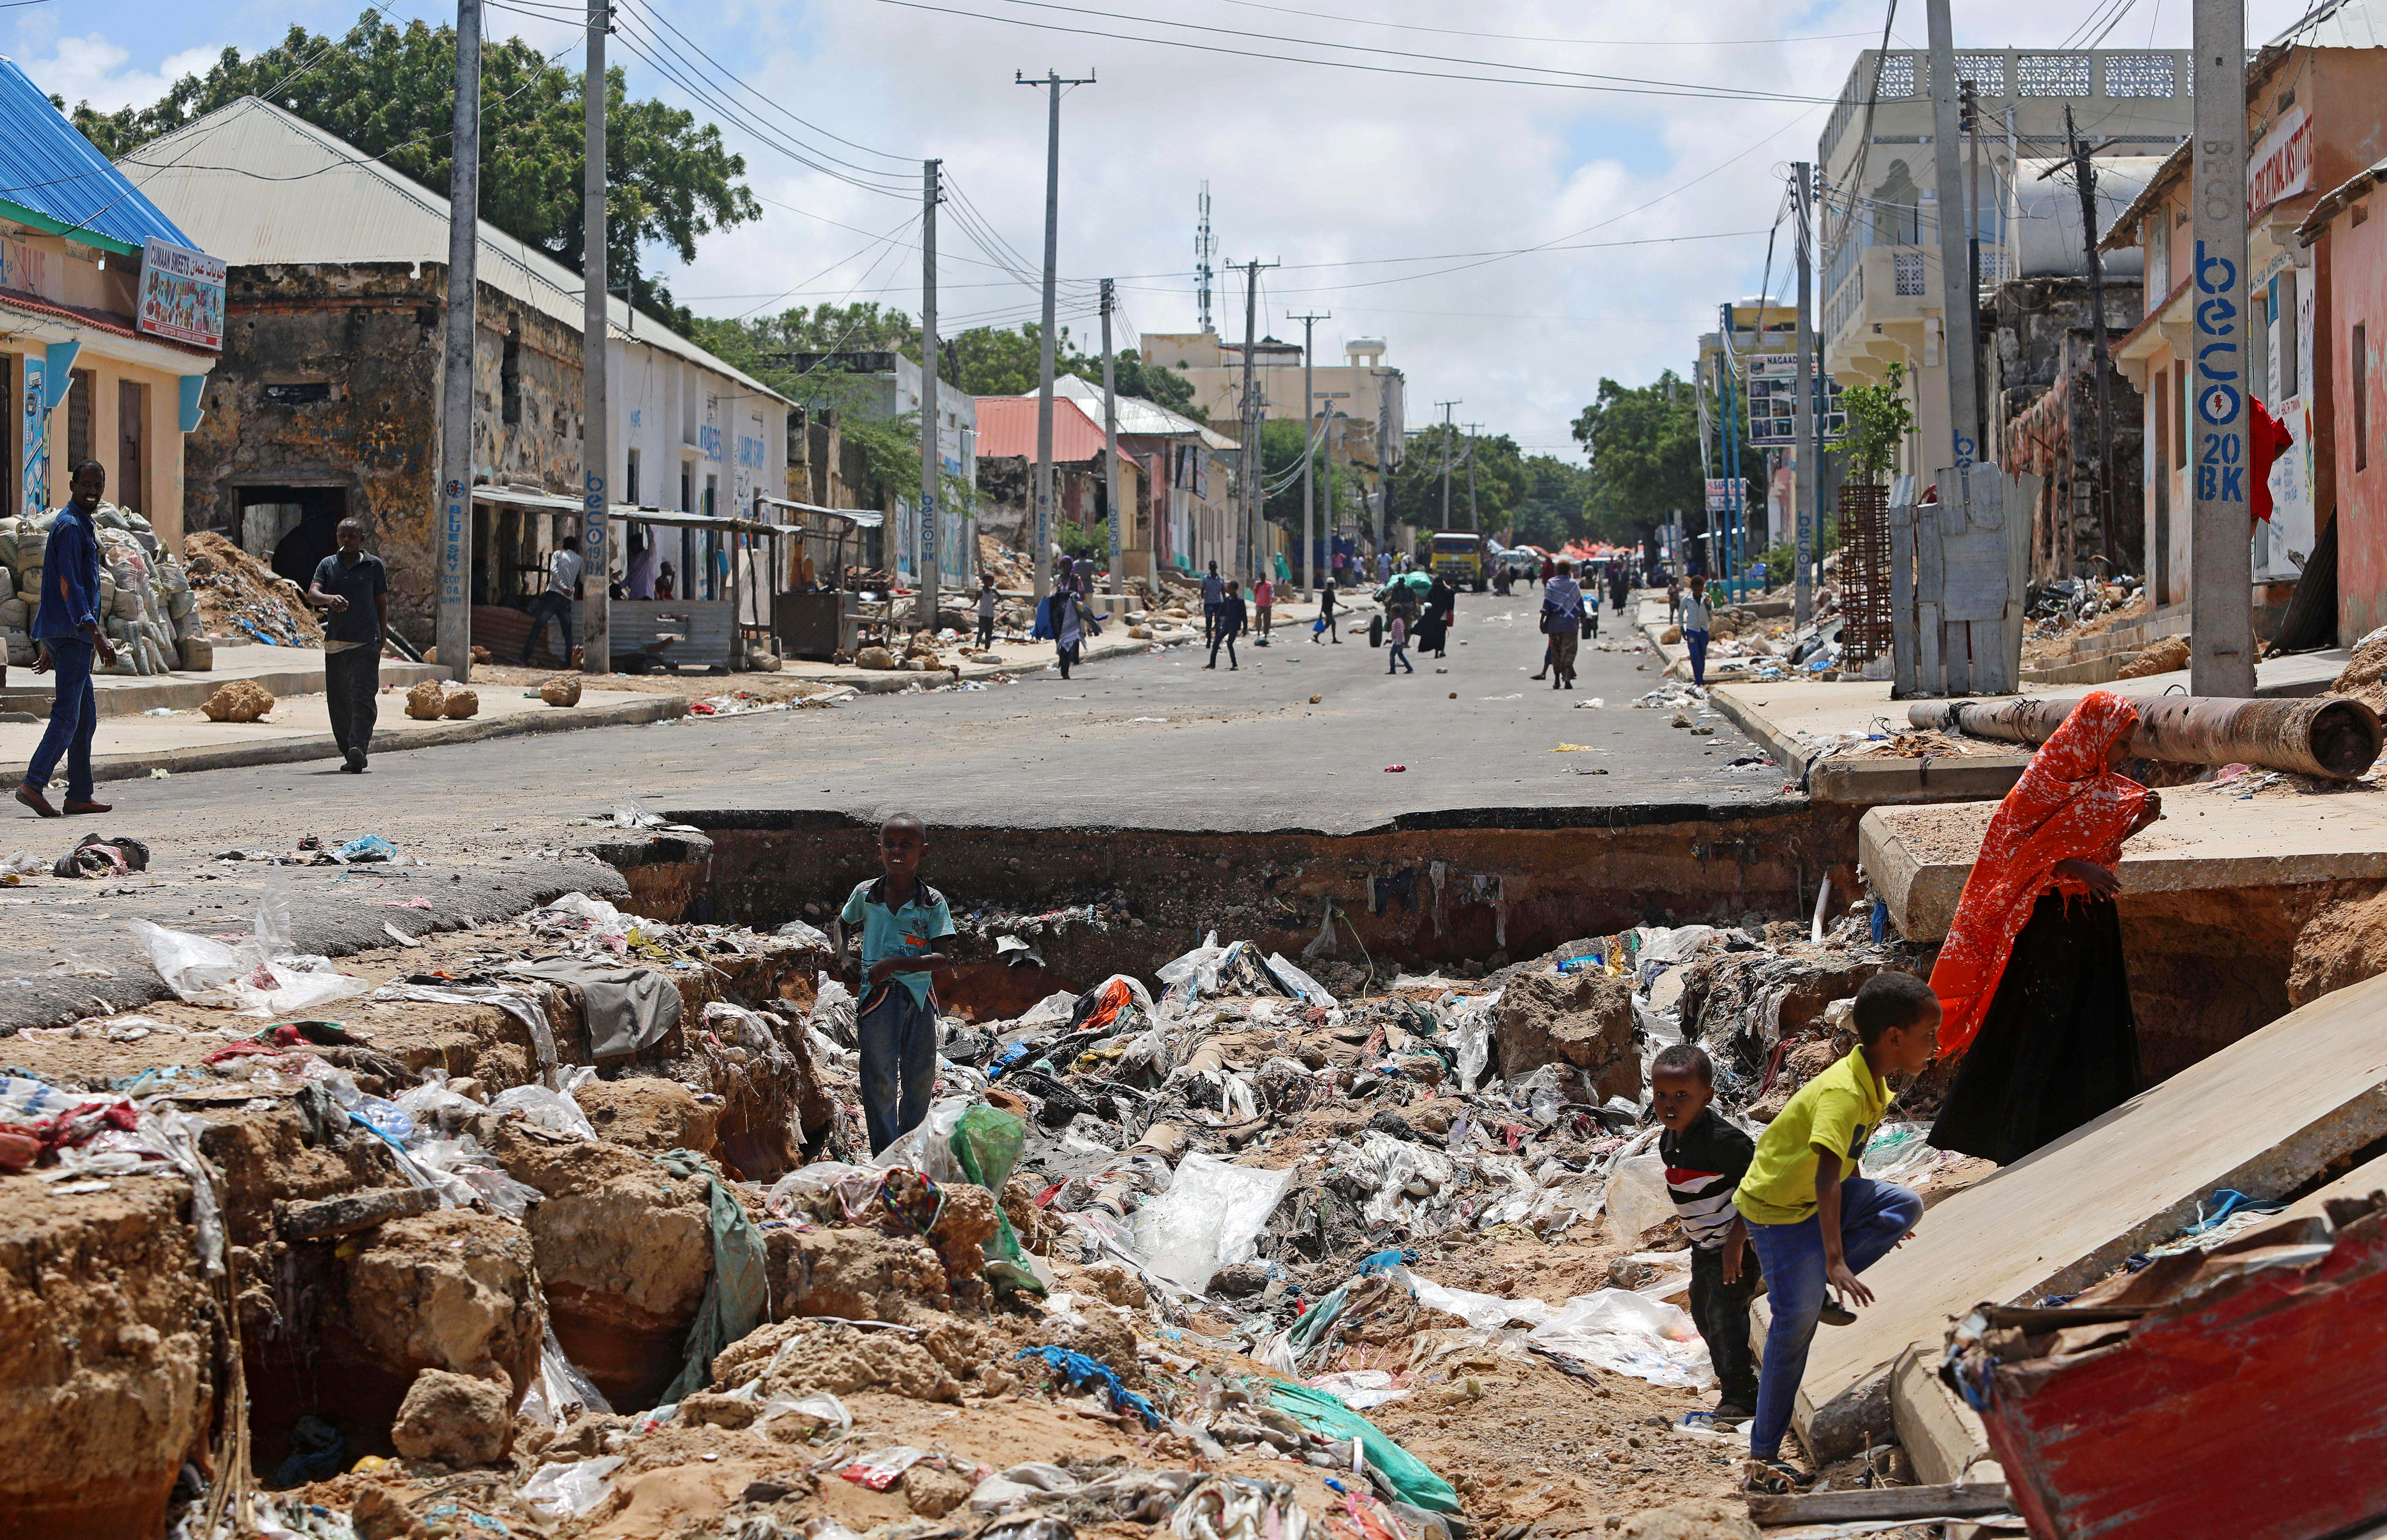 Children play near a road destroyed by rain water that flooded their street in Mogadishu, Somalia May 21, 2018.